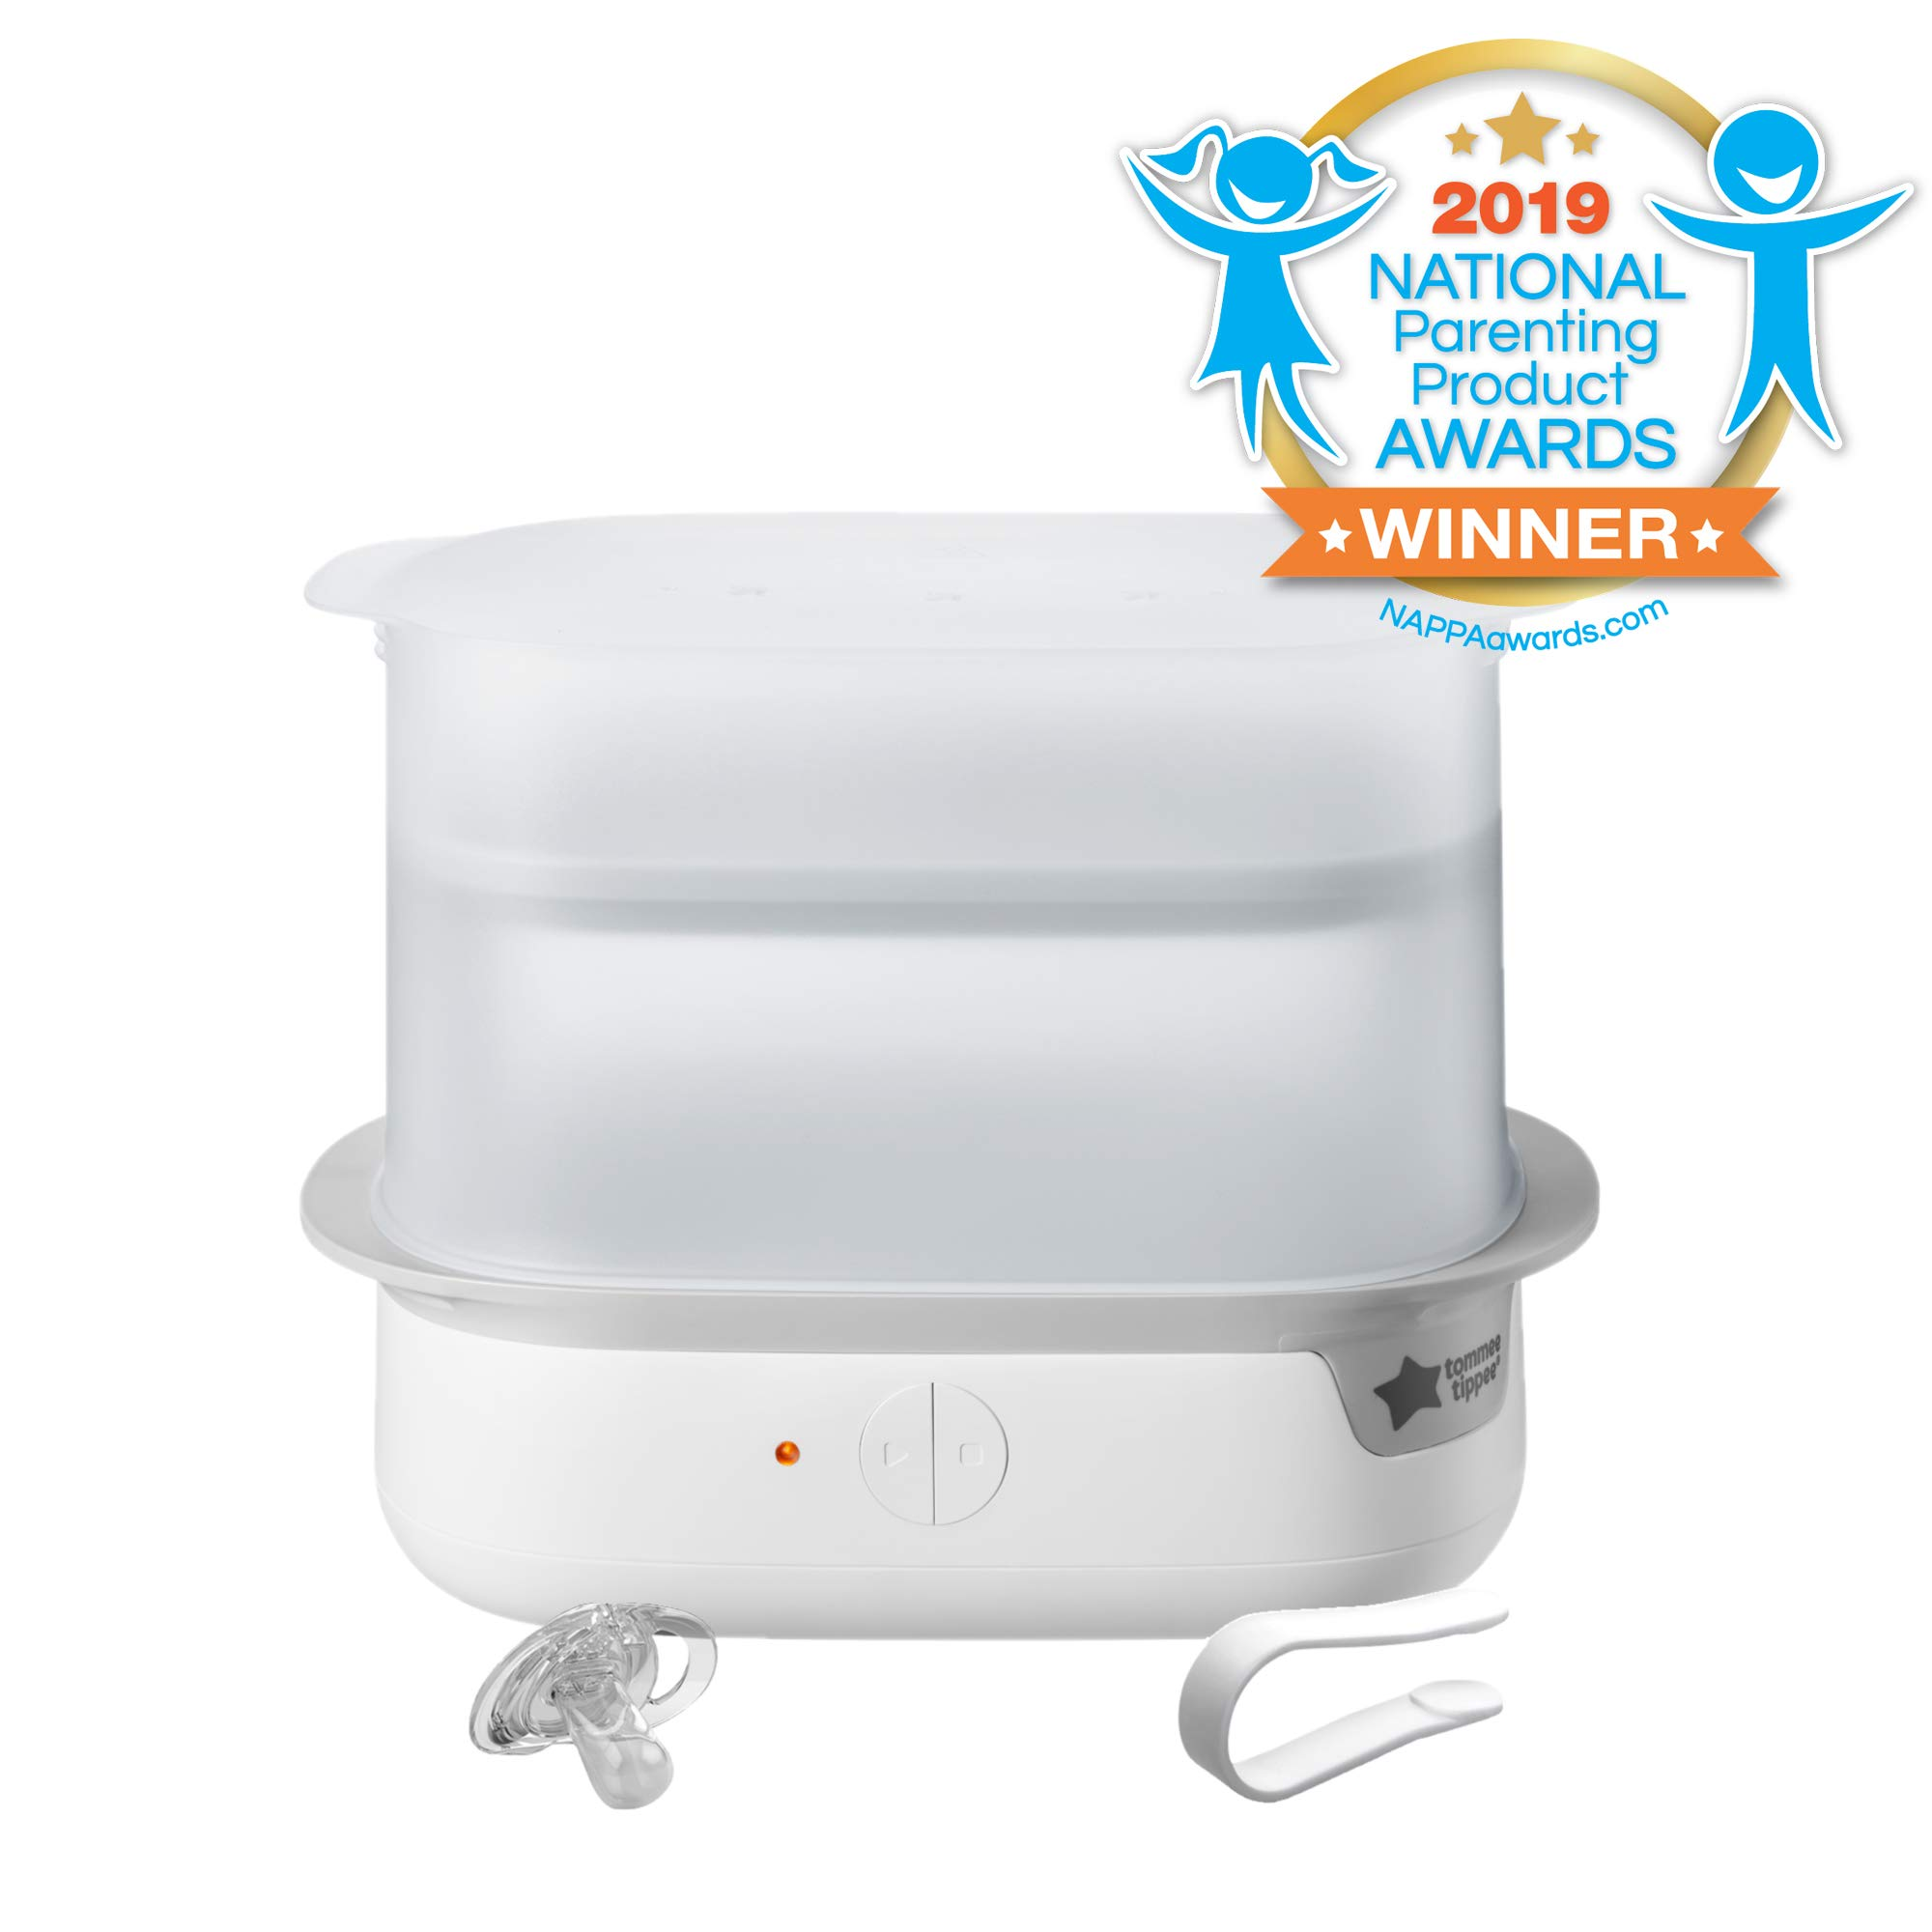 Improved Tommee Tippee Steri Steam Sterilizer